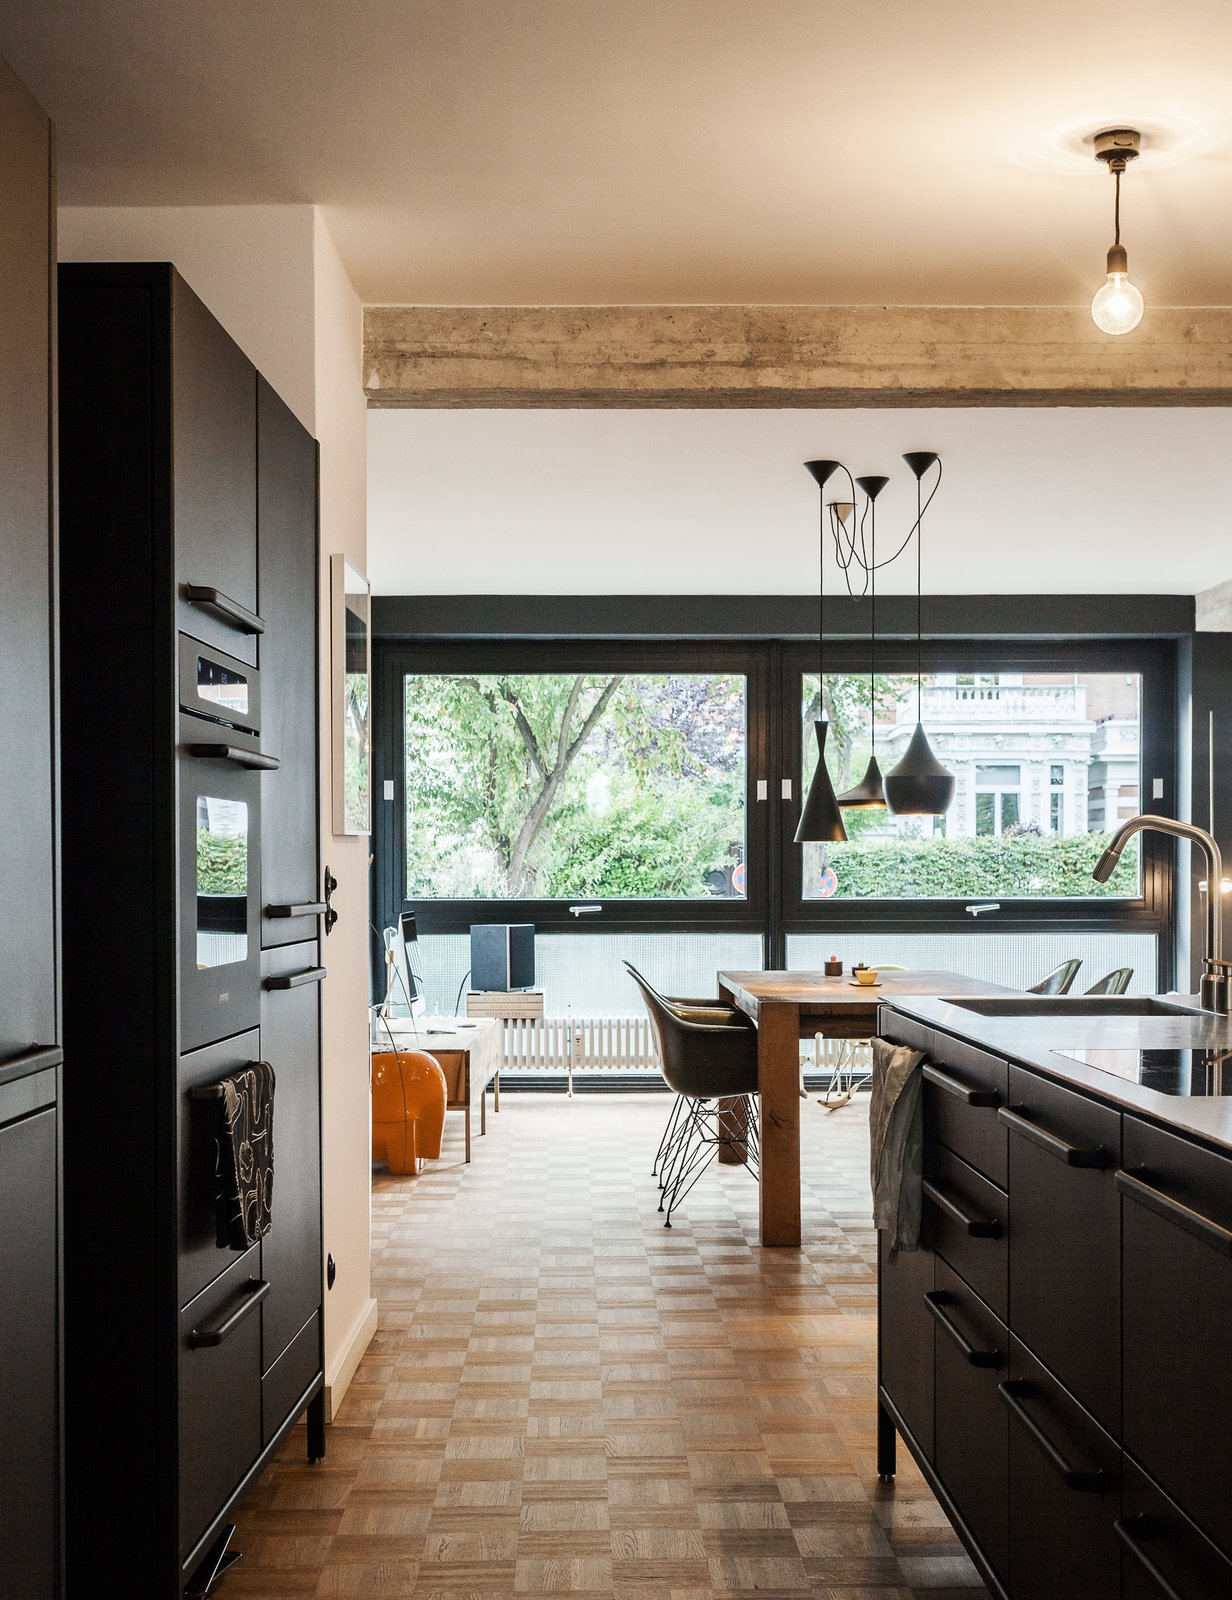 For their kitchen, Fabian and Dorothee Heine selected a steel countertop to contrast the matte-black island and cabinets from Vipp. At mealtimes, the family gathers at a Bigfoot table from e15, which is surrounded by vintage Eames shell chairs. Tagged: Kitchen, Pendant Lighting, Wood Cabinet, and Marble Counter.  Photo 2 of 12 in We Can't Get Enough of This German Apartment's Sleek Matte-Black Kitchen